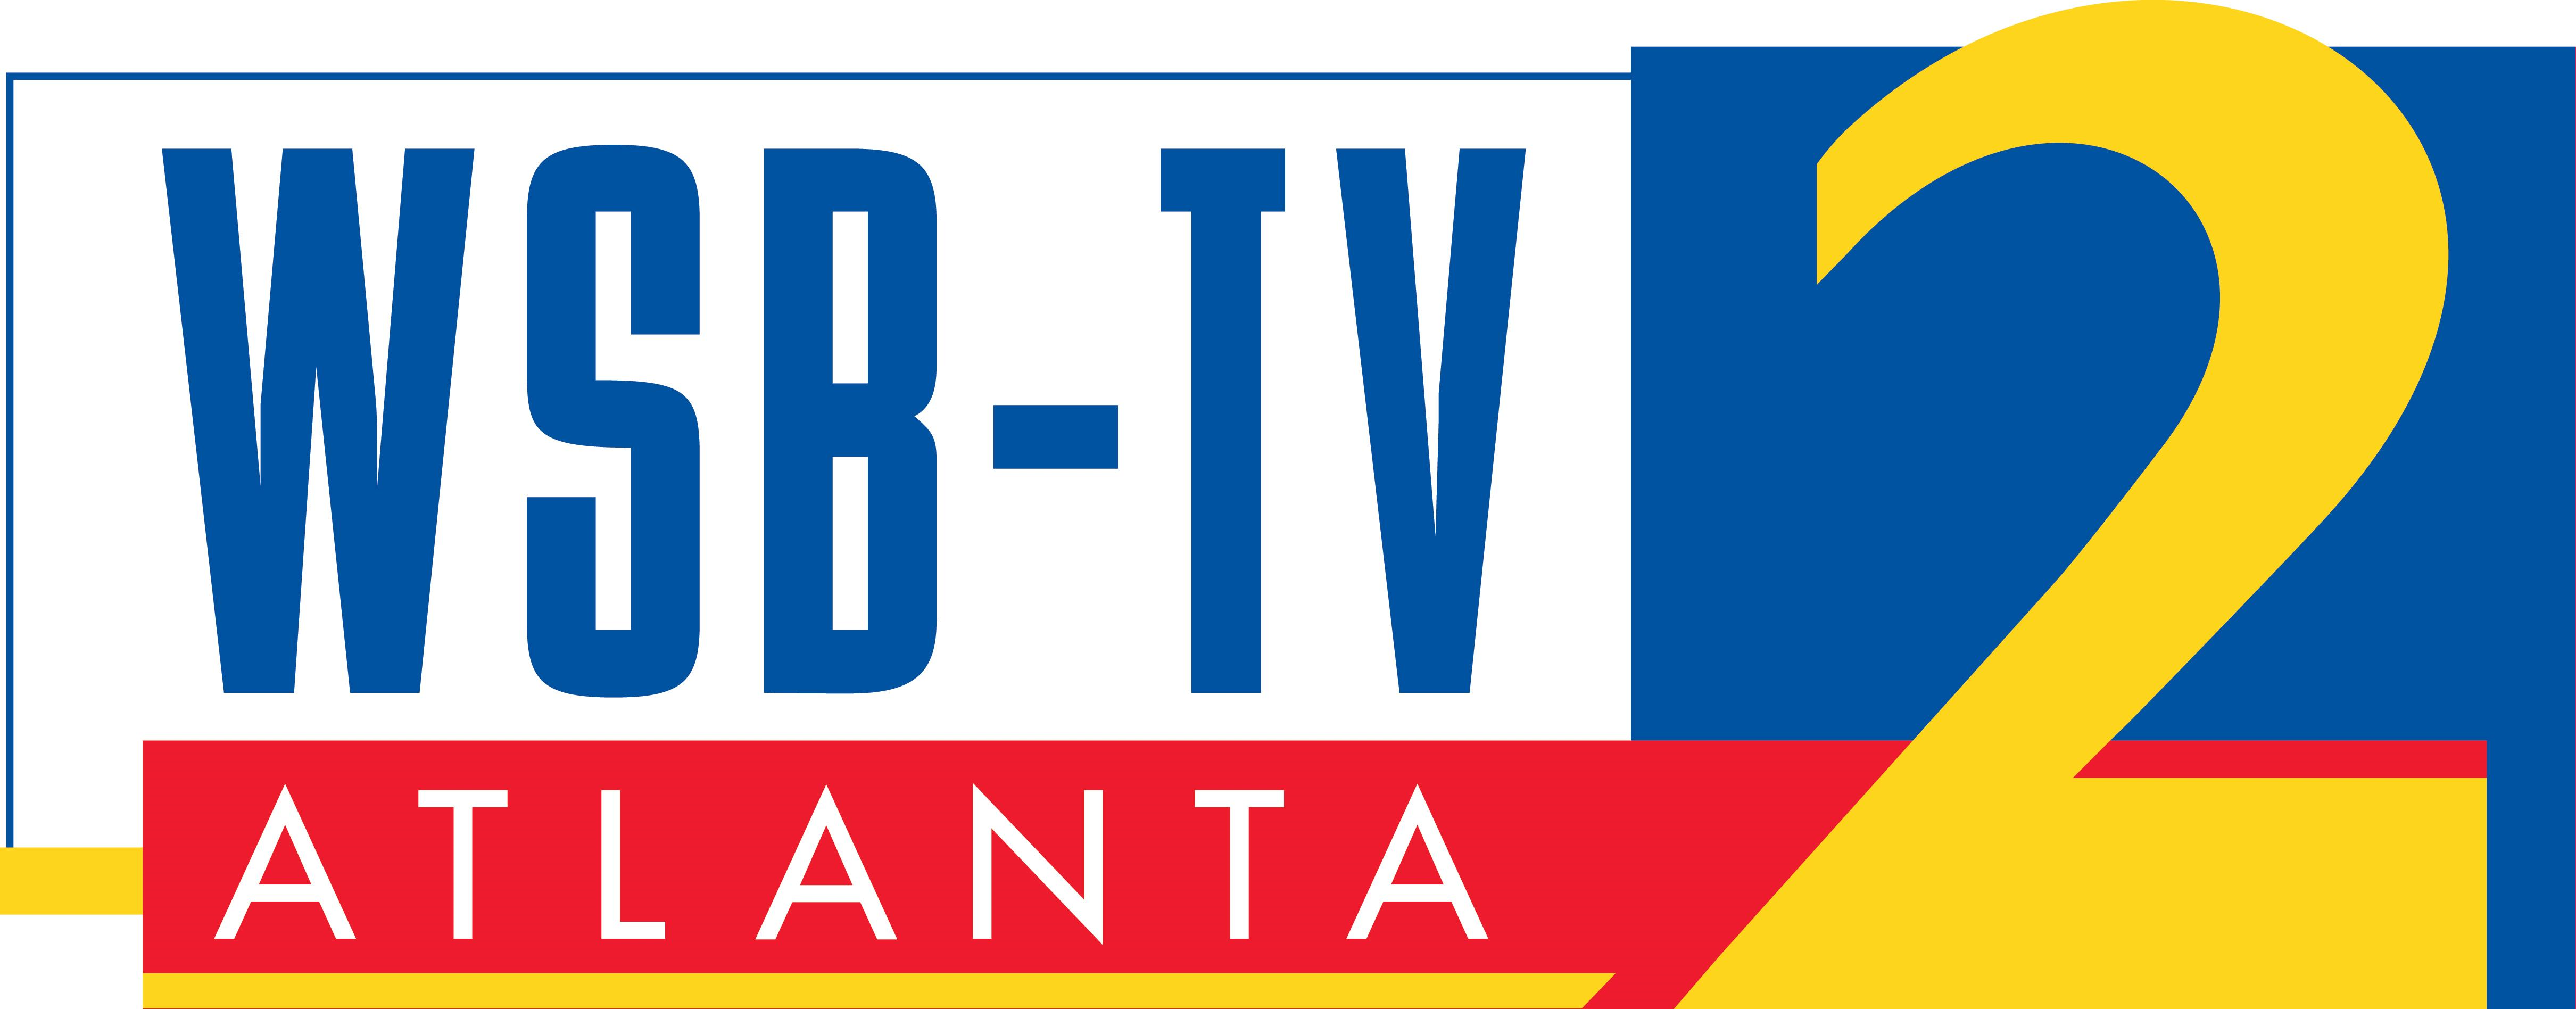 WSB-TV_Atlanta.png